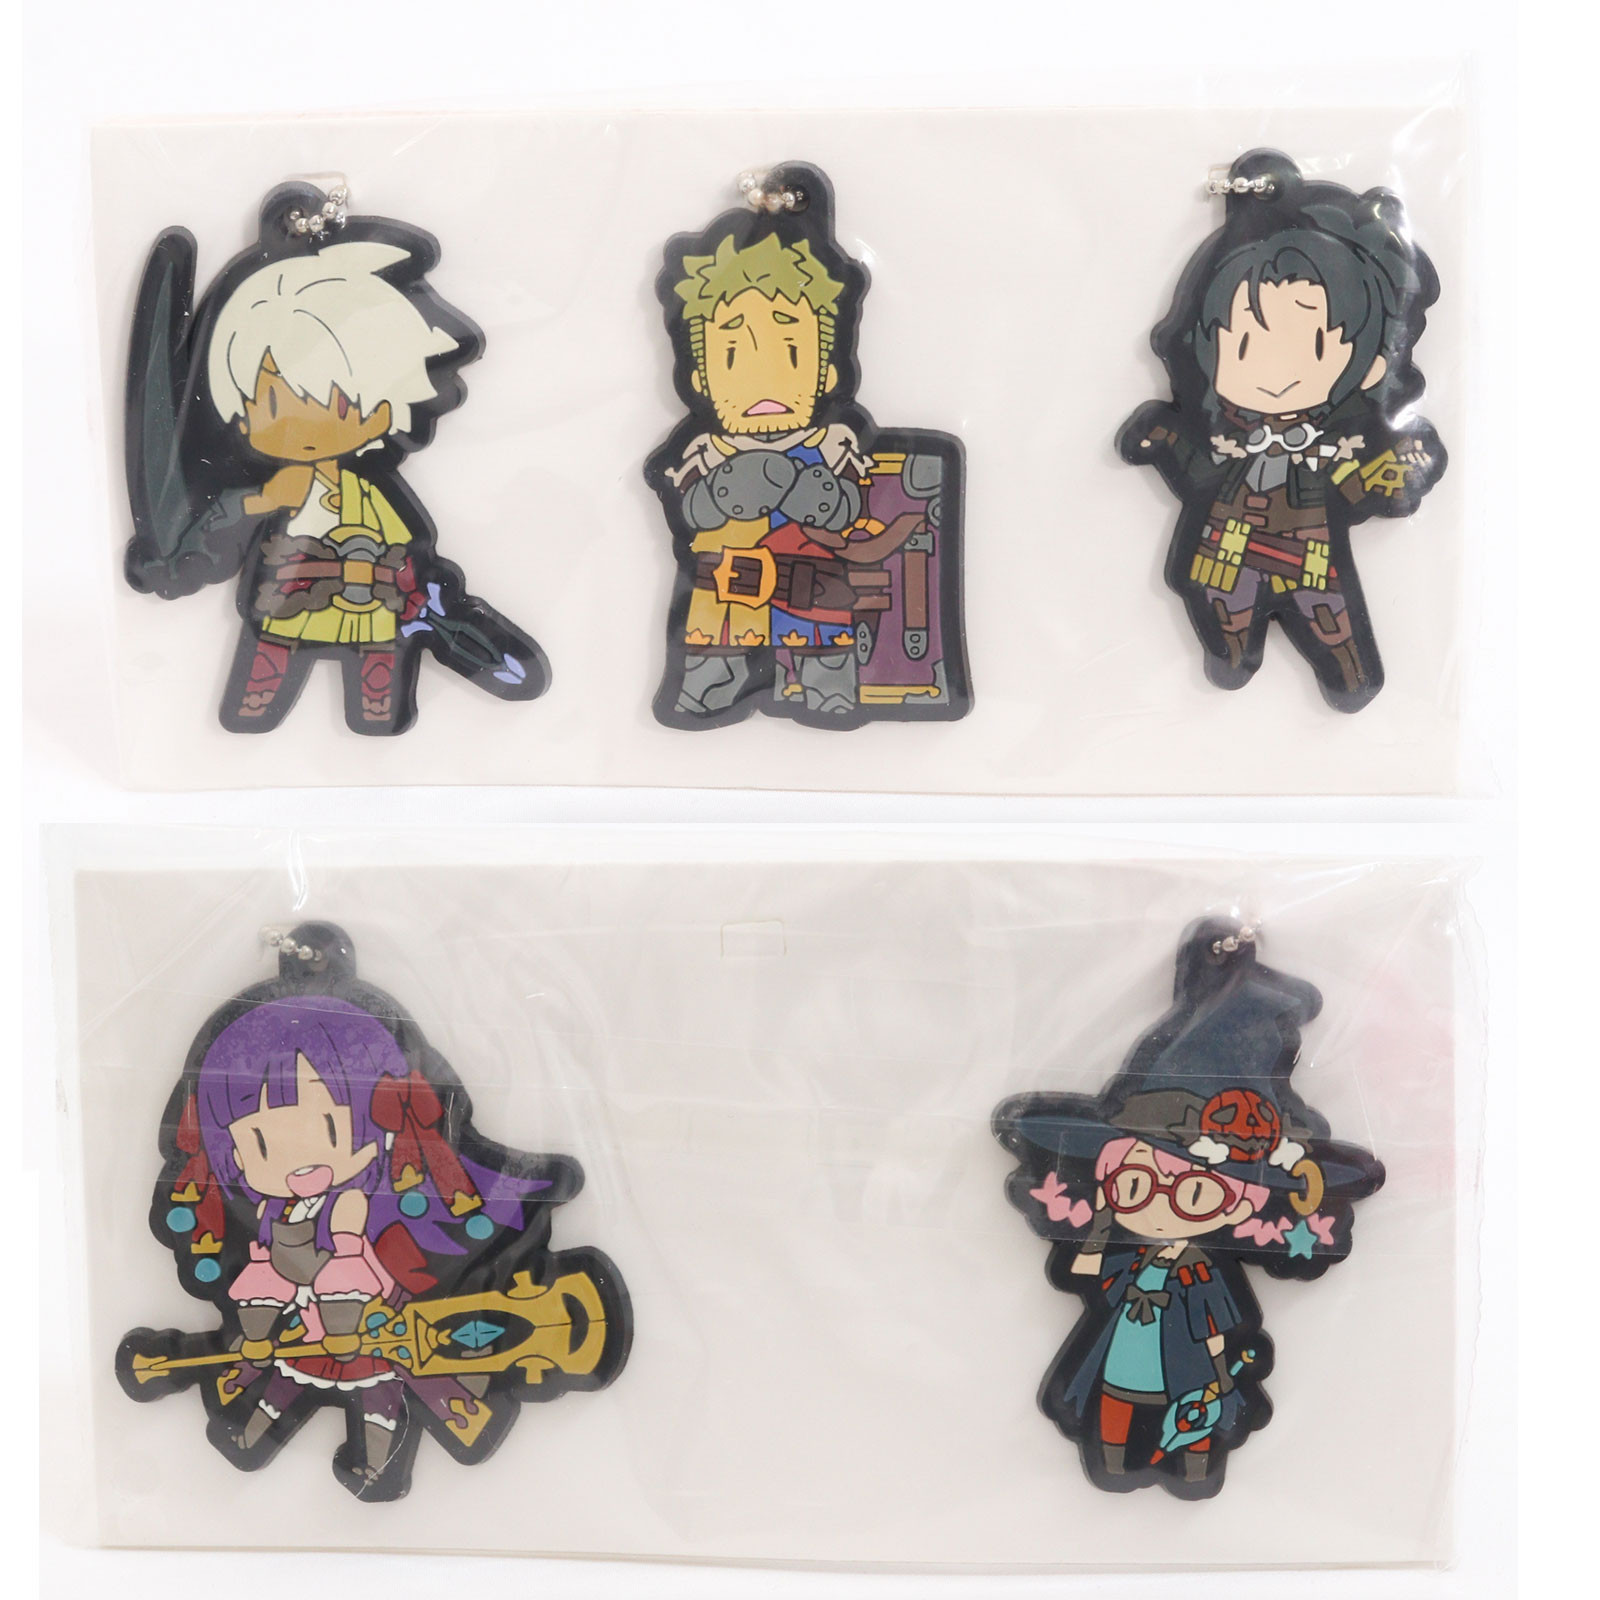 Etrian Odyssey 2 Untold: The Fafnir Knight Mascot Rubber Ballchain 5pc Set